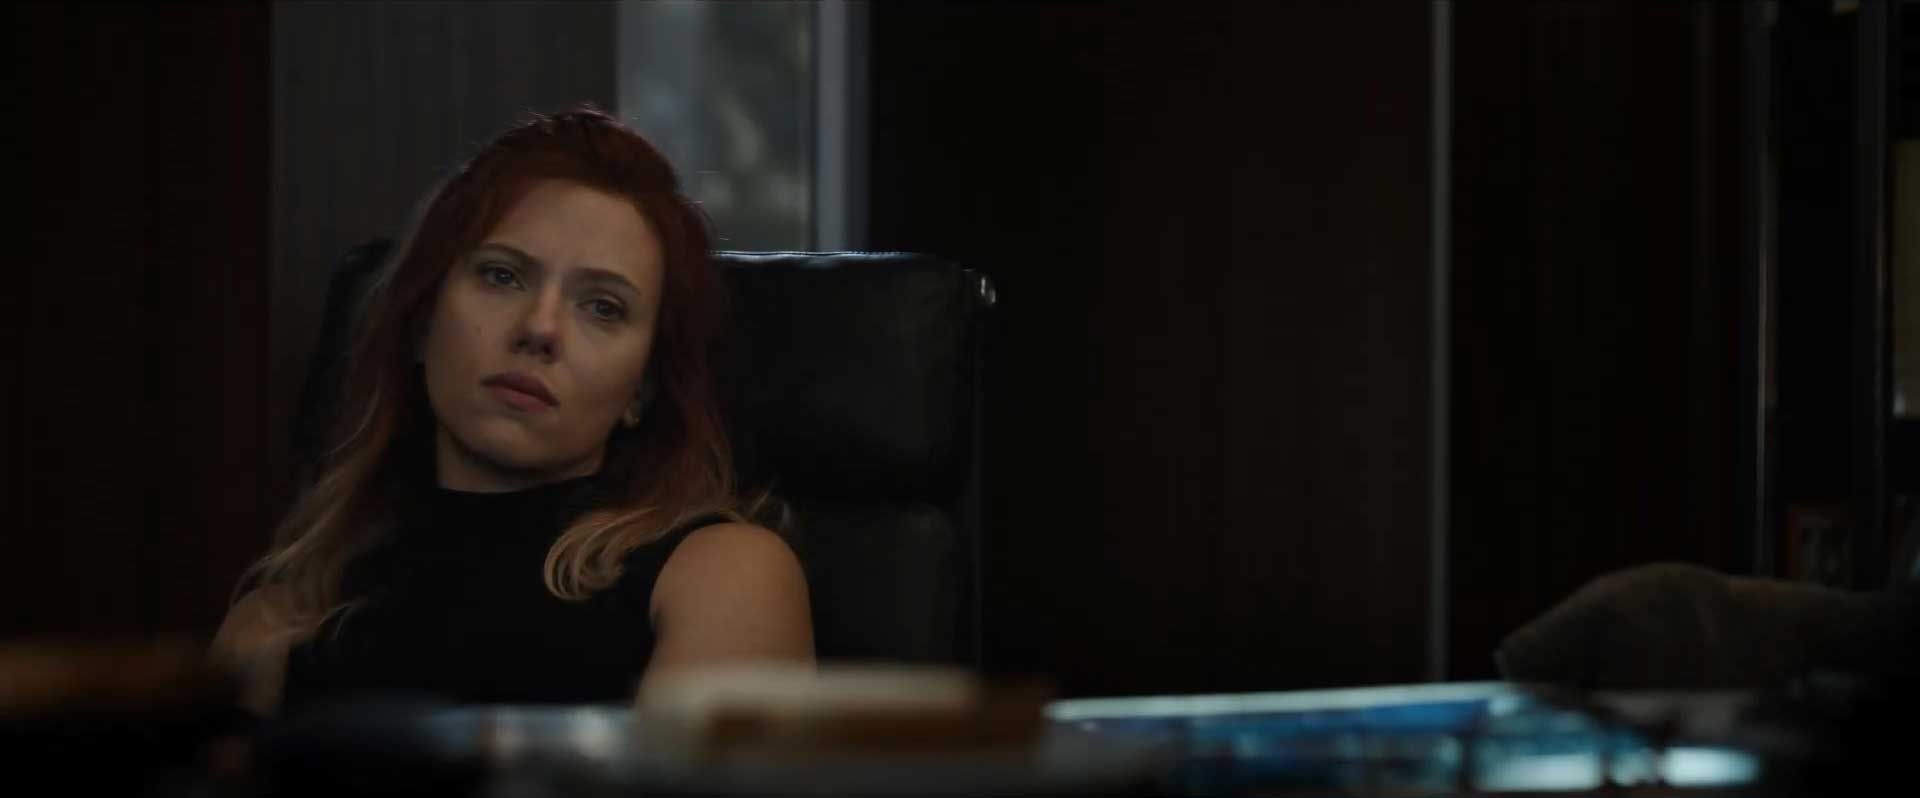 Avengers Endgame Trailer 2 Breakdown - Black Widow Red Hair